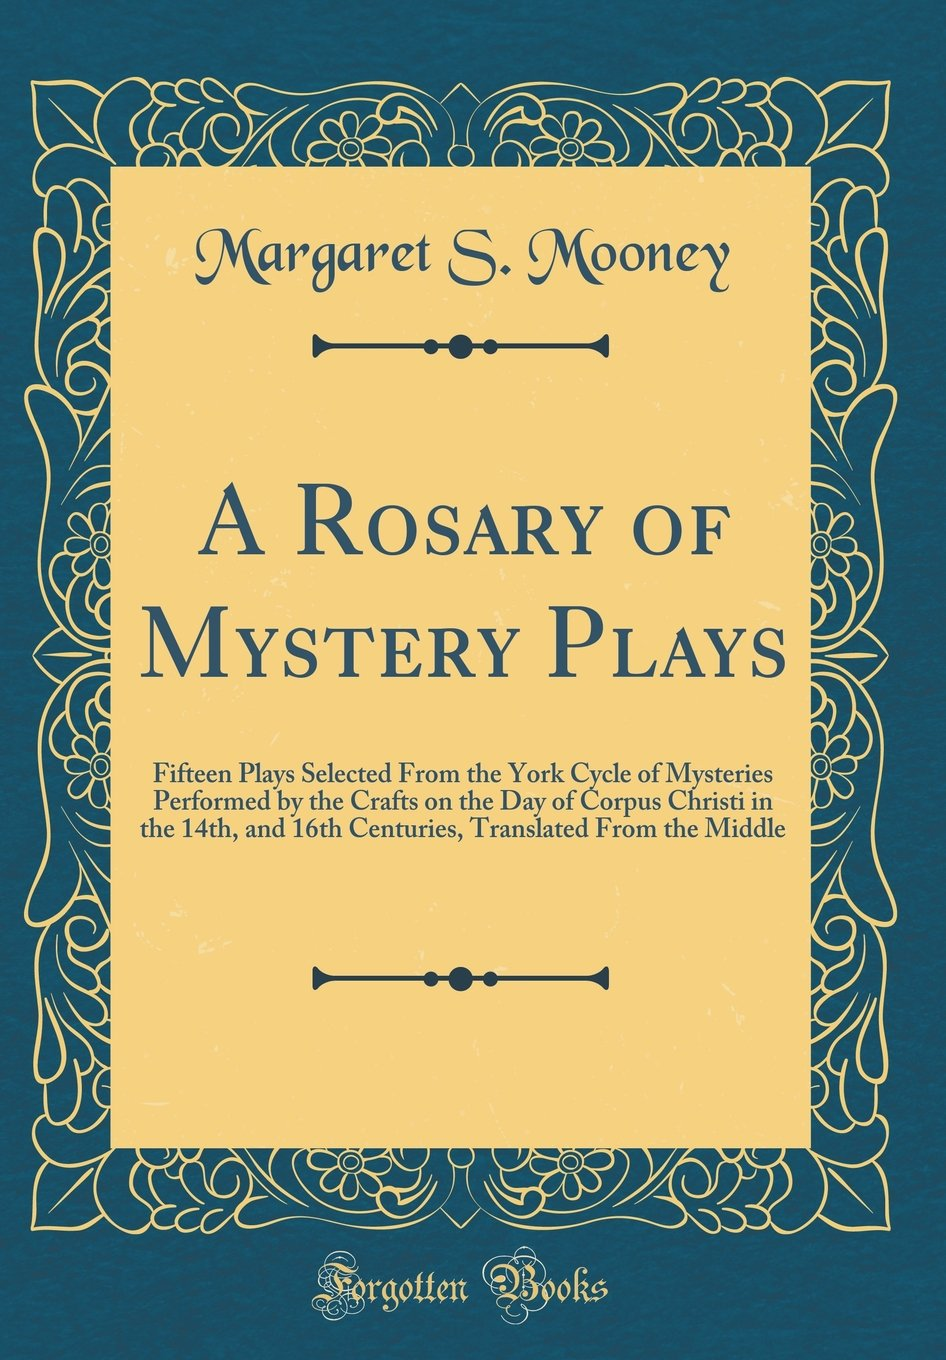 Download A Rosary of Mystery Plays: Fifteen Plays Selected From the York Cycle of Mysteries Performed by the Crafts on the Day of Corpus Christi in the 14th, ... Translated From the Middle (Classic Reprint) pdf